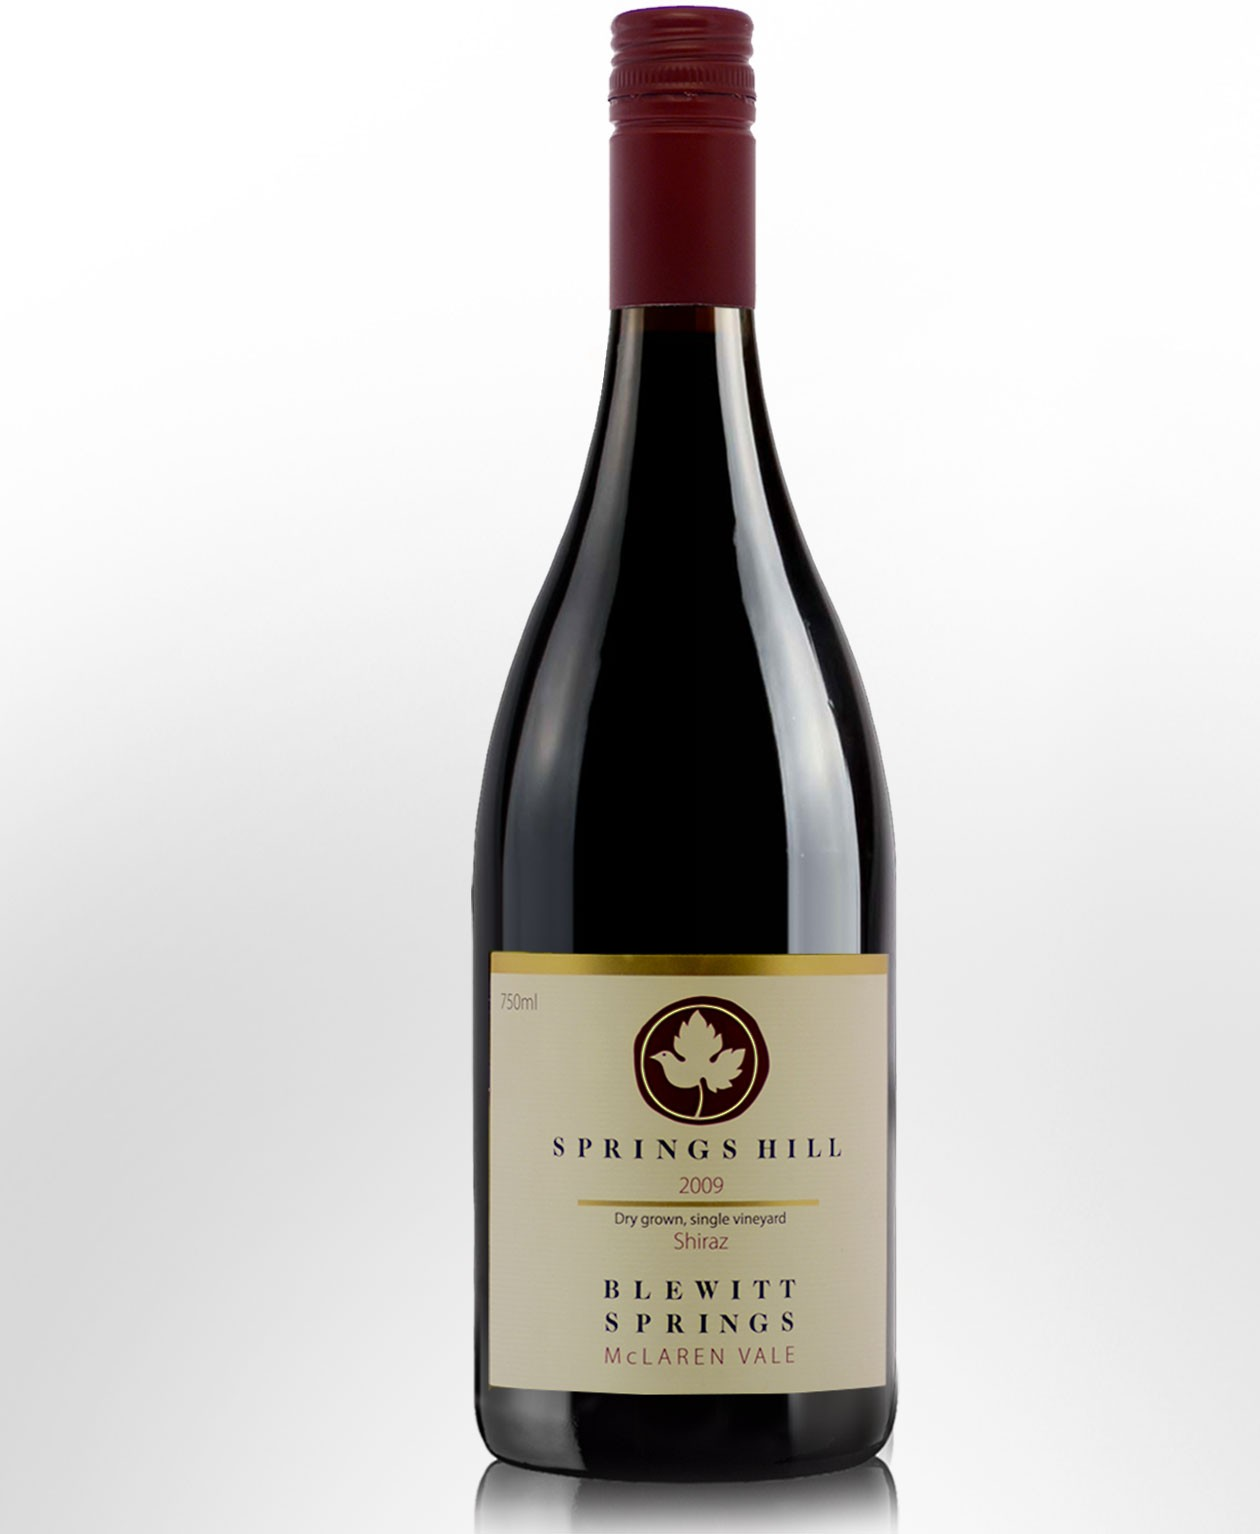 2009 Spring Hill Blewitt Springs Shiraz